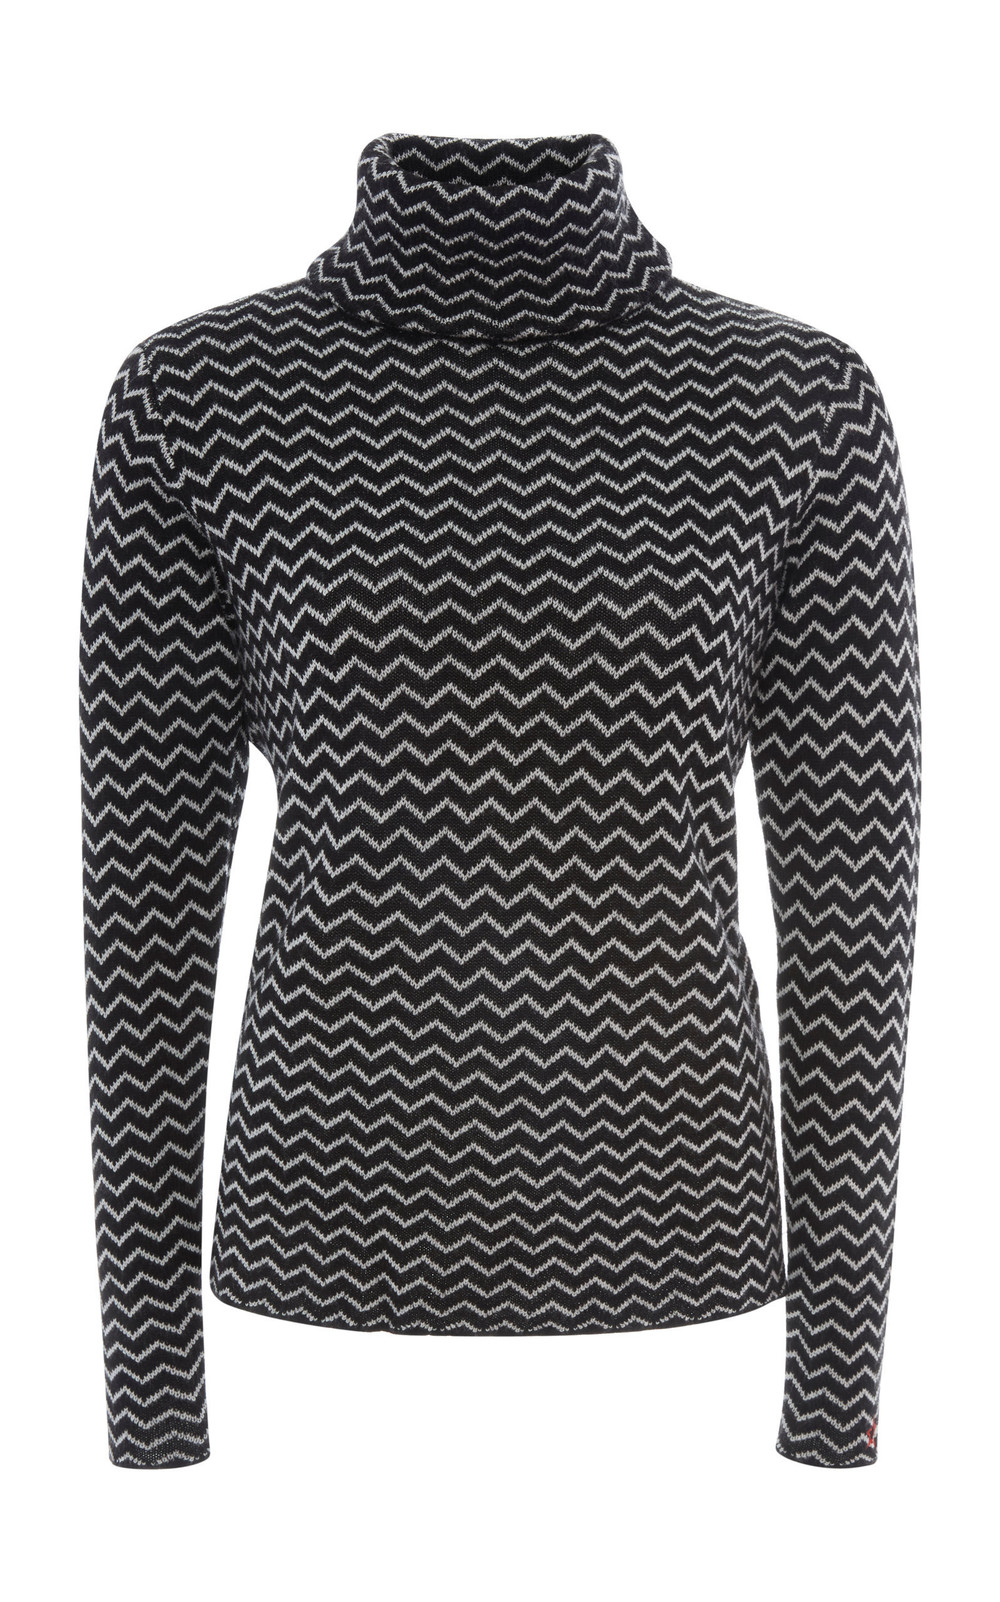 Perfect Moment Frequency Intarsia-Knit Wool Turtleneck Sweater in black / white